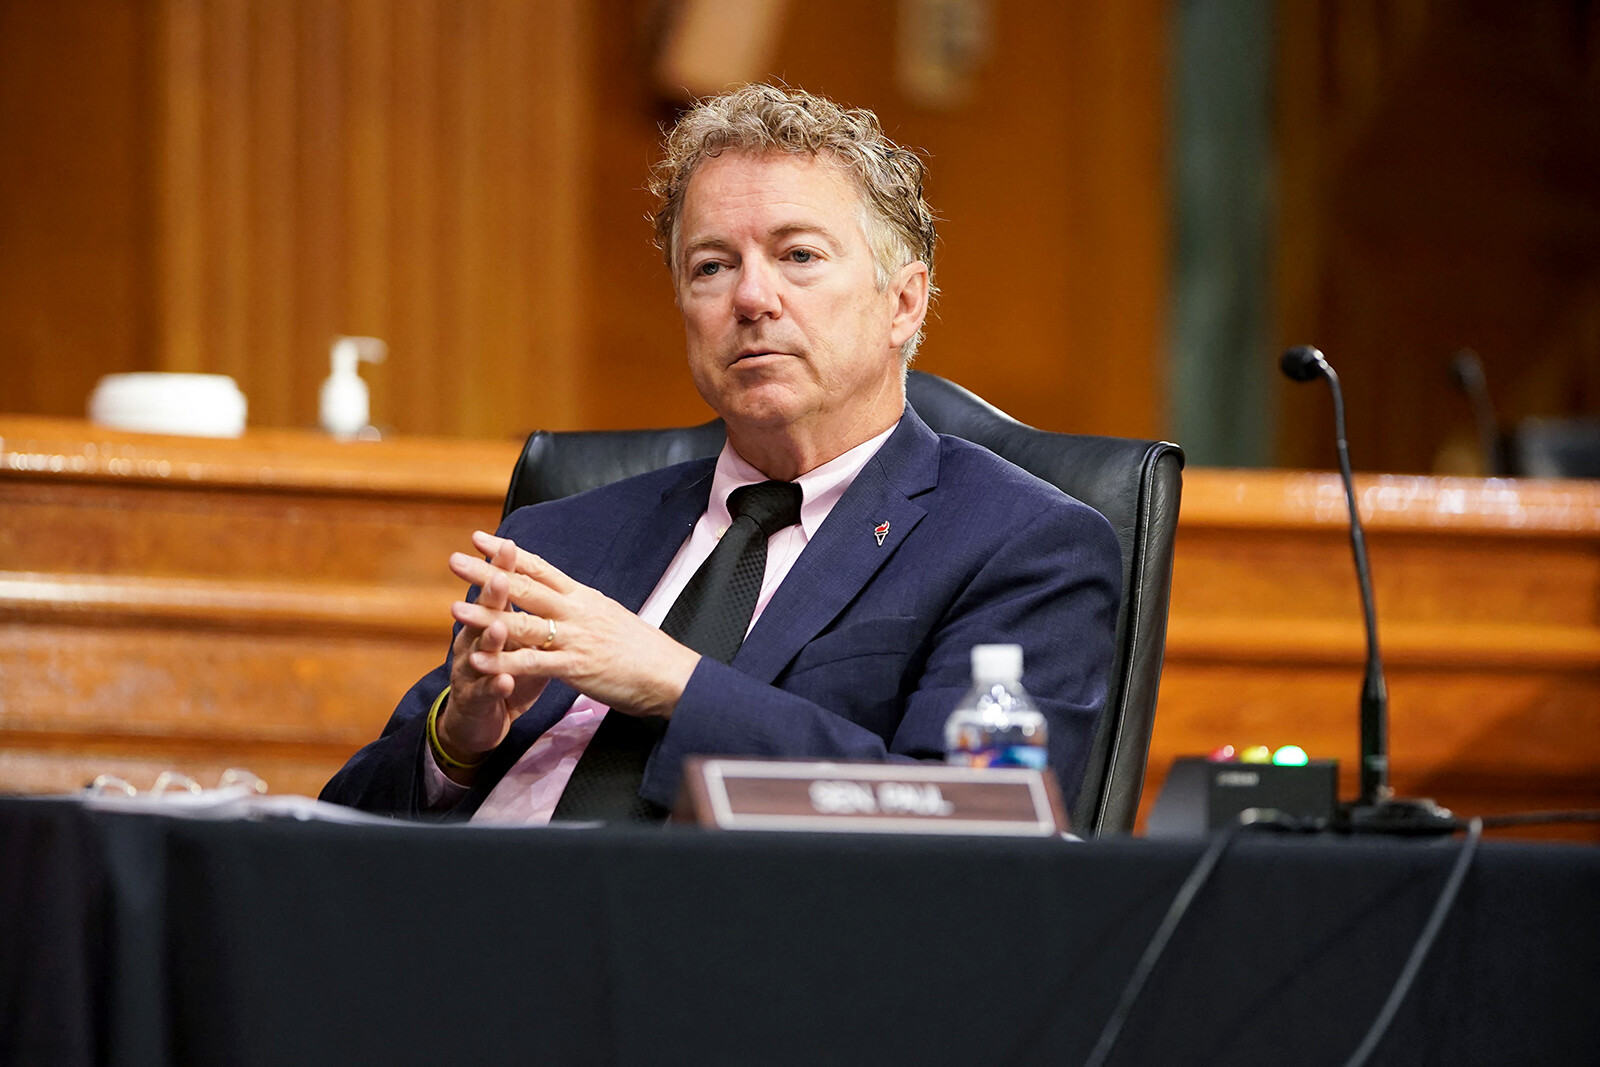 Rand Paul reveals in late financial disclosure that his wife bought stock in company behind remdesivir in February 2020